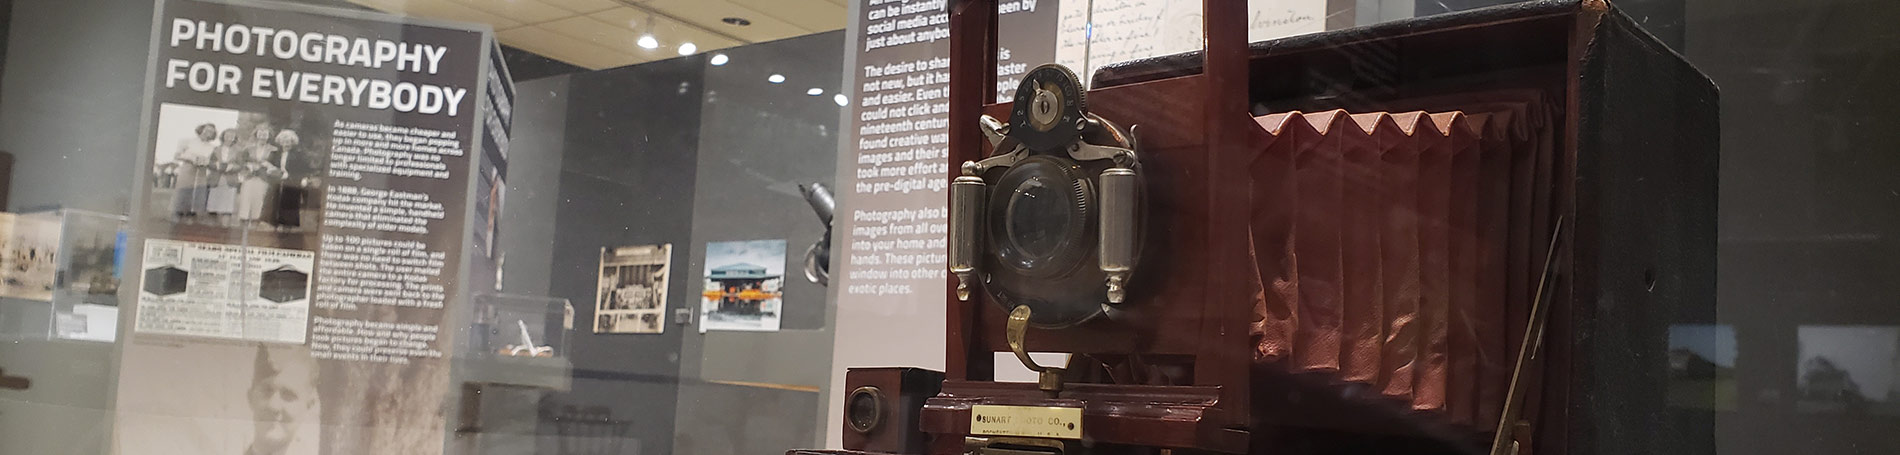 Old camera on display.